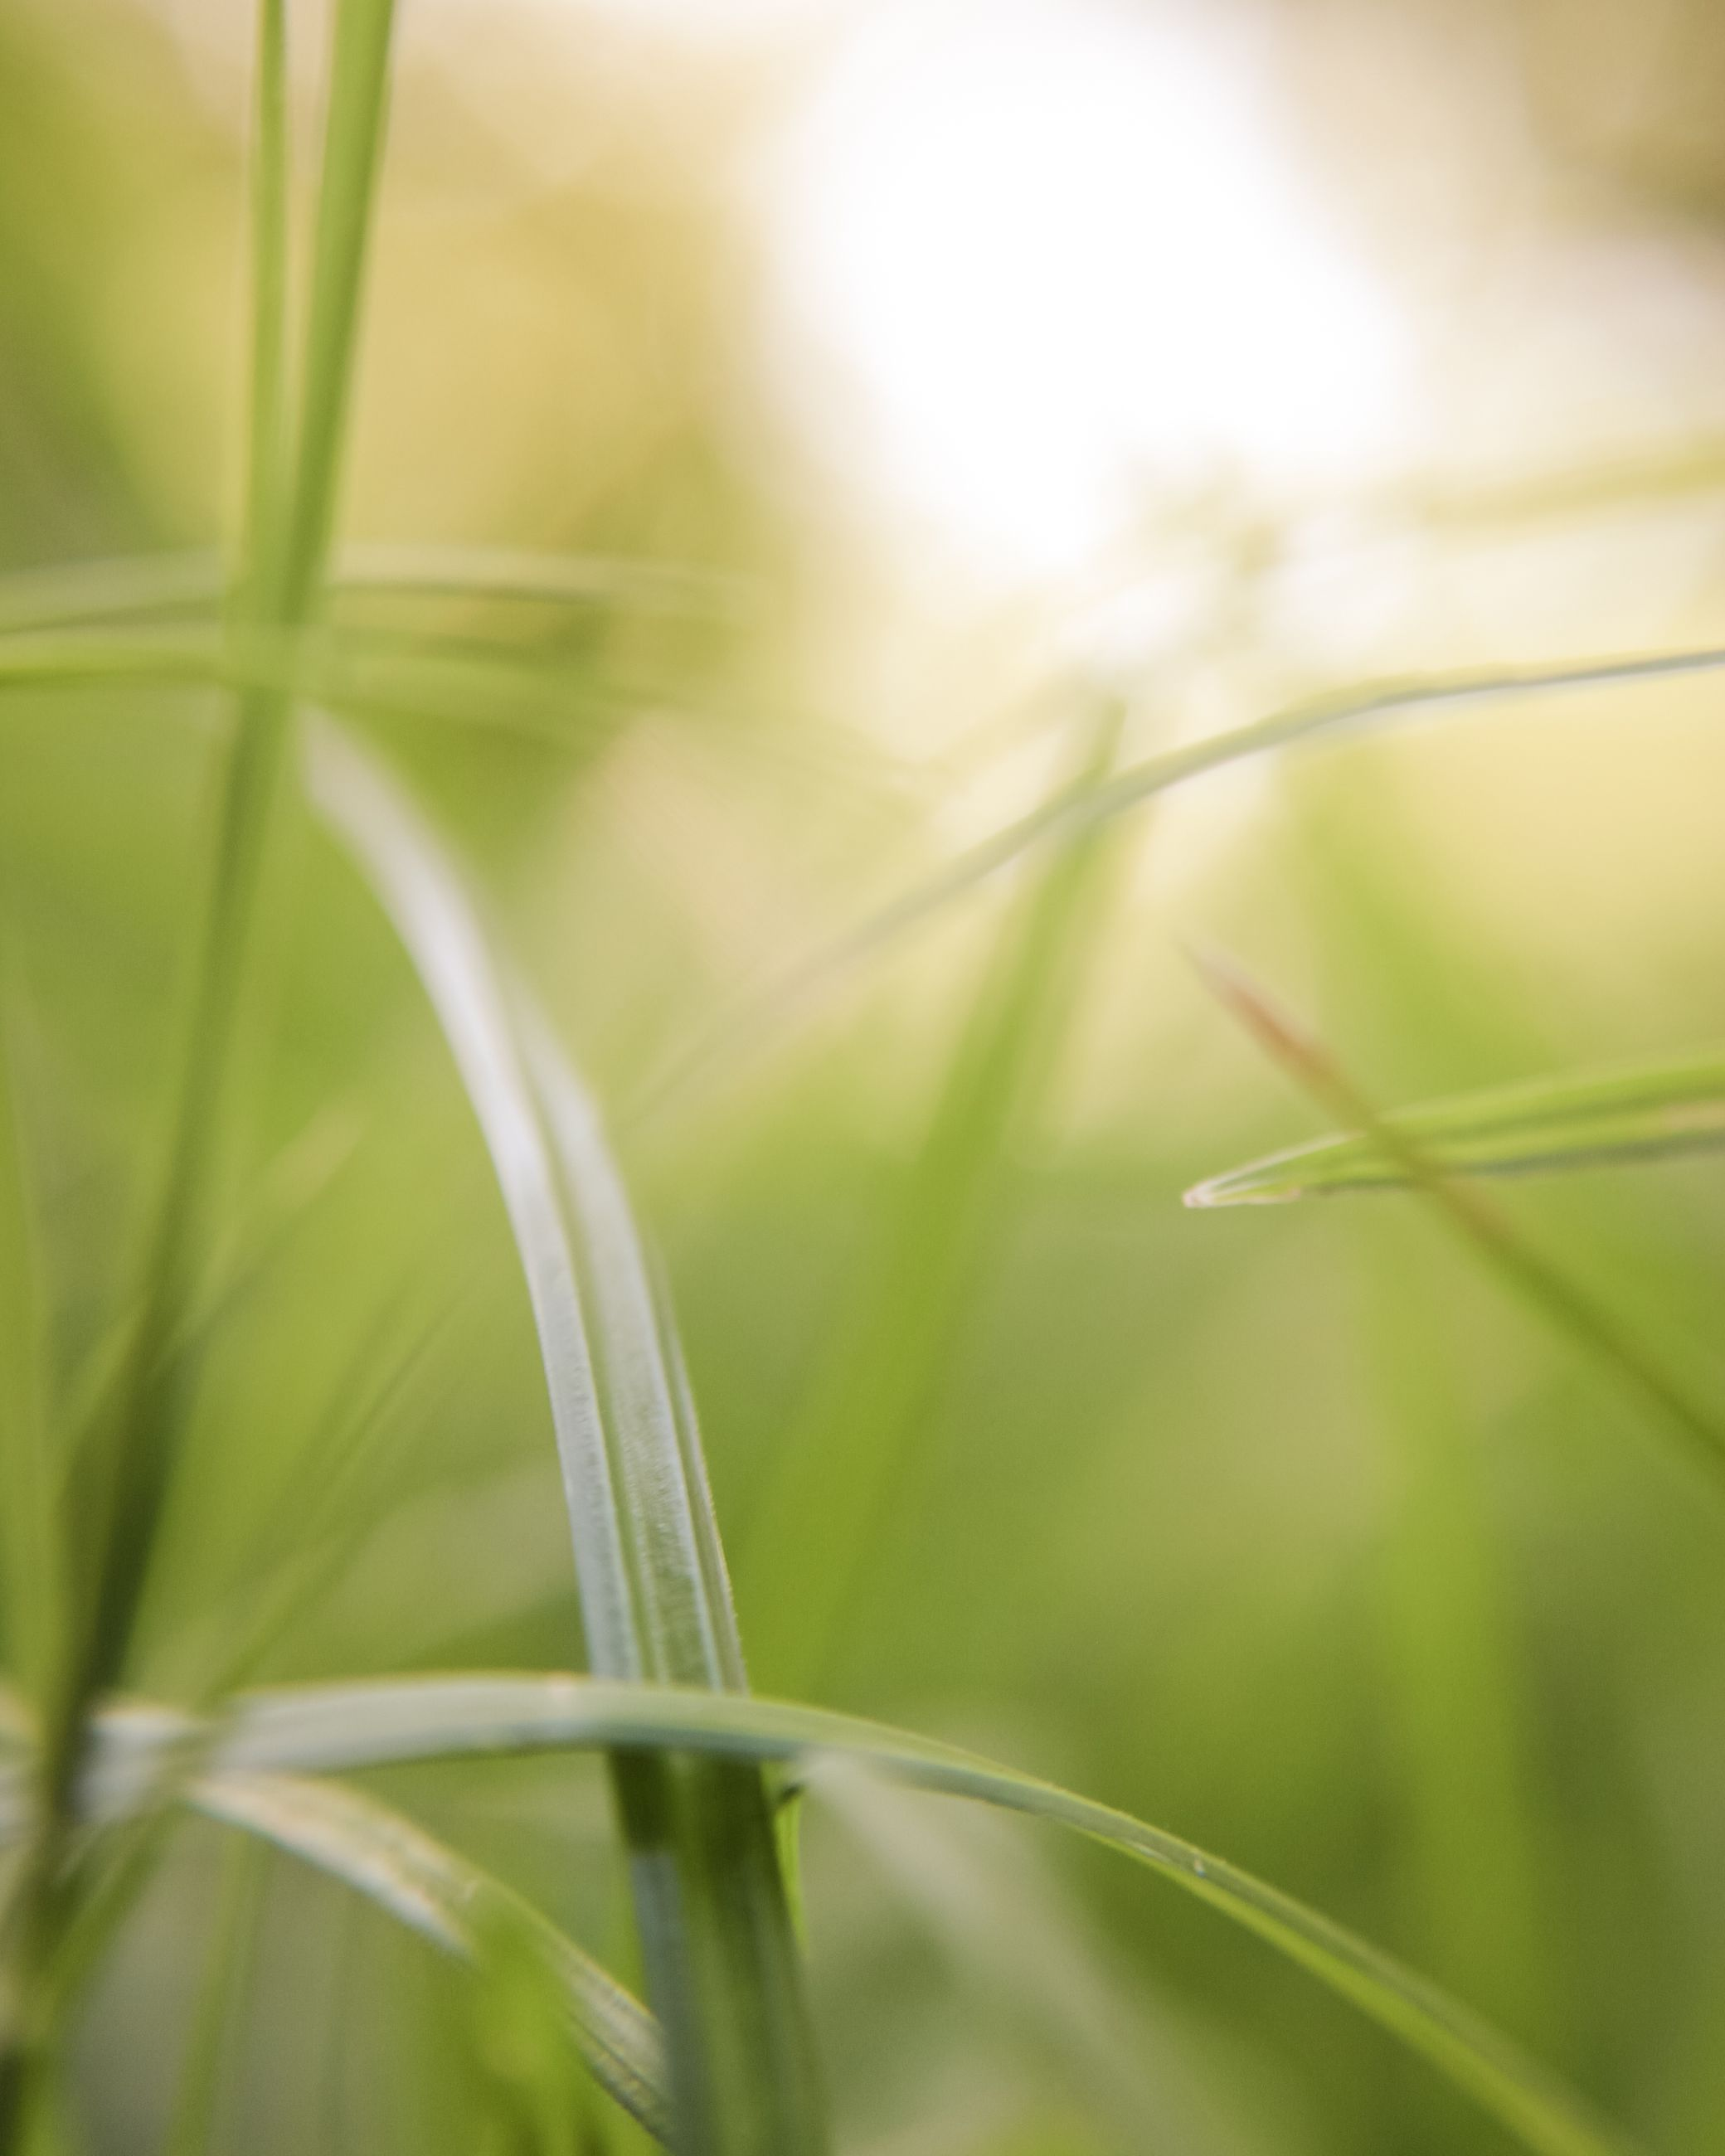 growth, plant, close-up, focus on foreground, nature, selective focus, fragility, grass, beauty in nature, blade of grass, green color, stem, outdoors, day, no people, tranquility, growing, green, botany, detail, sun, sunbeam, backgrounds